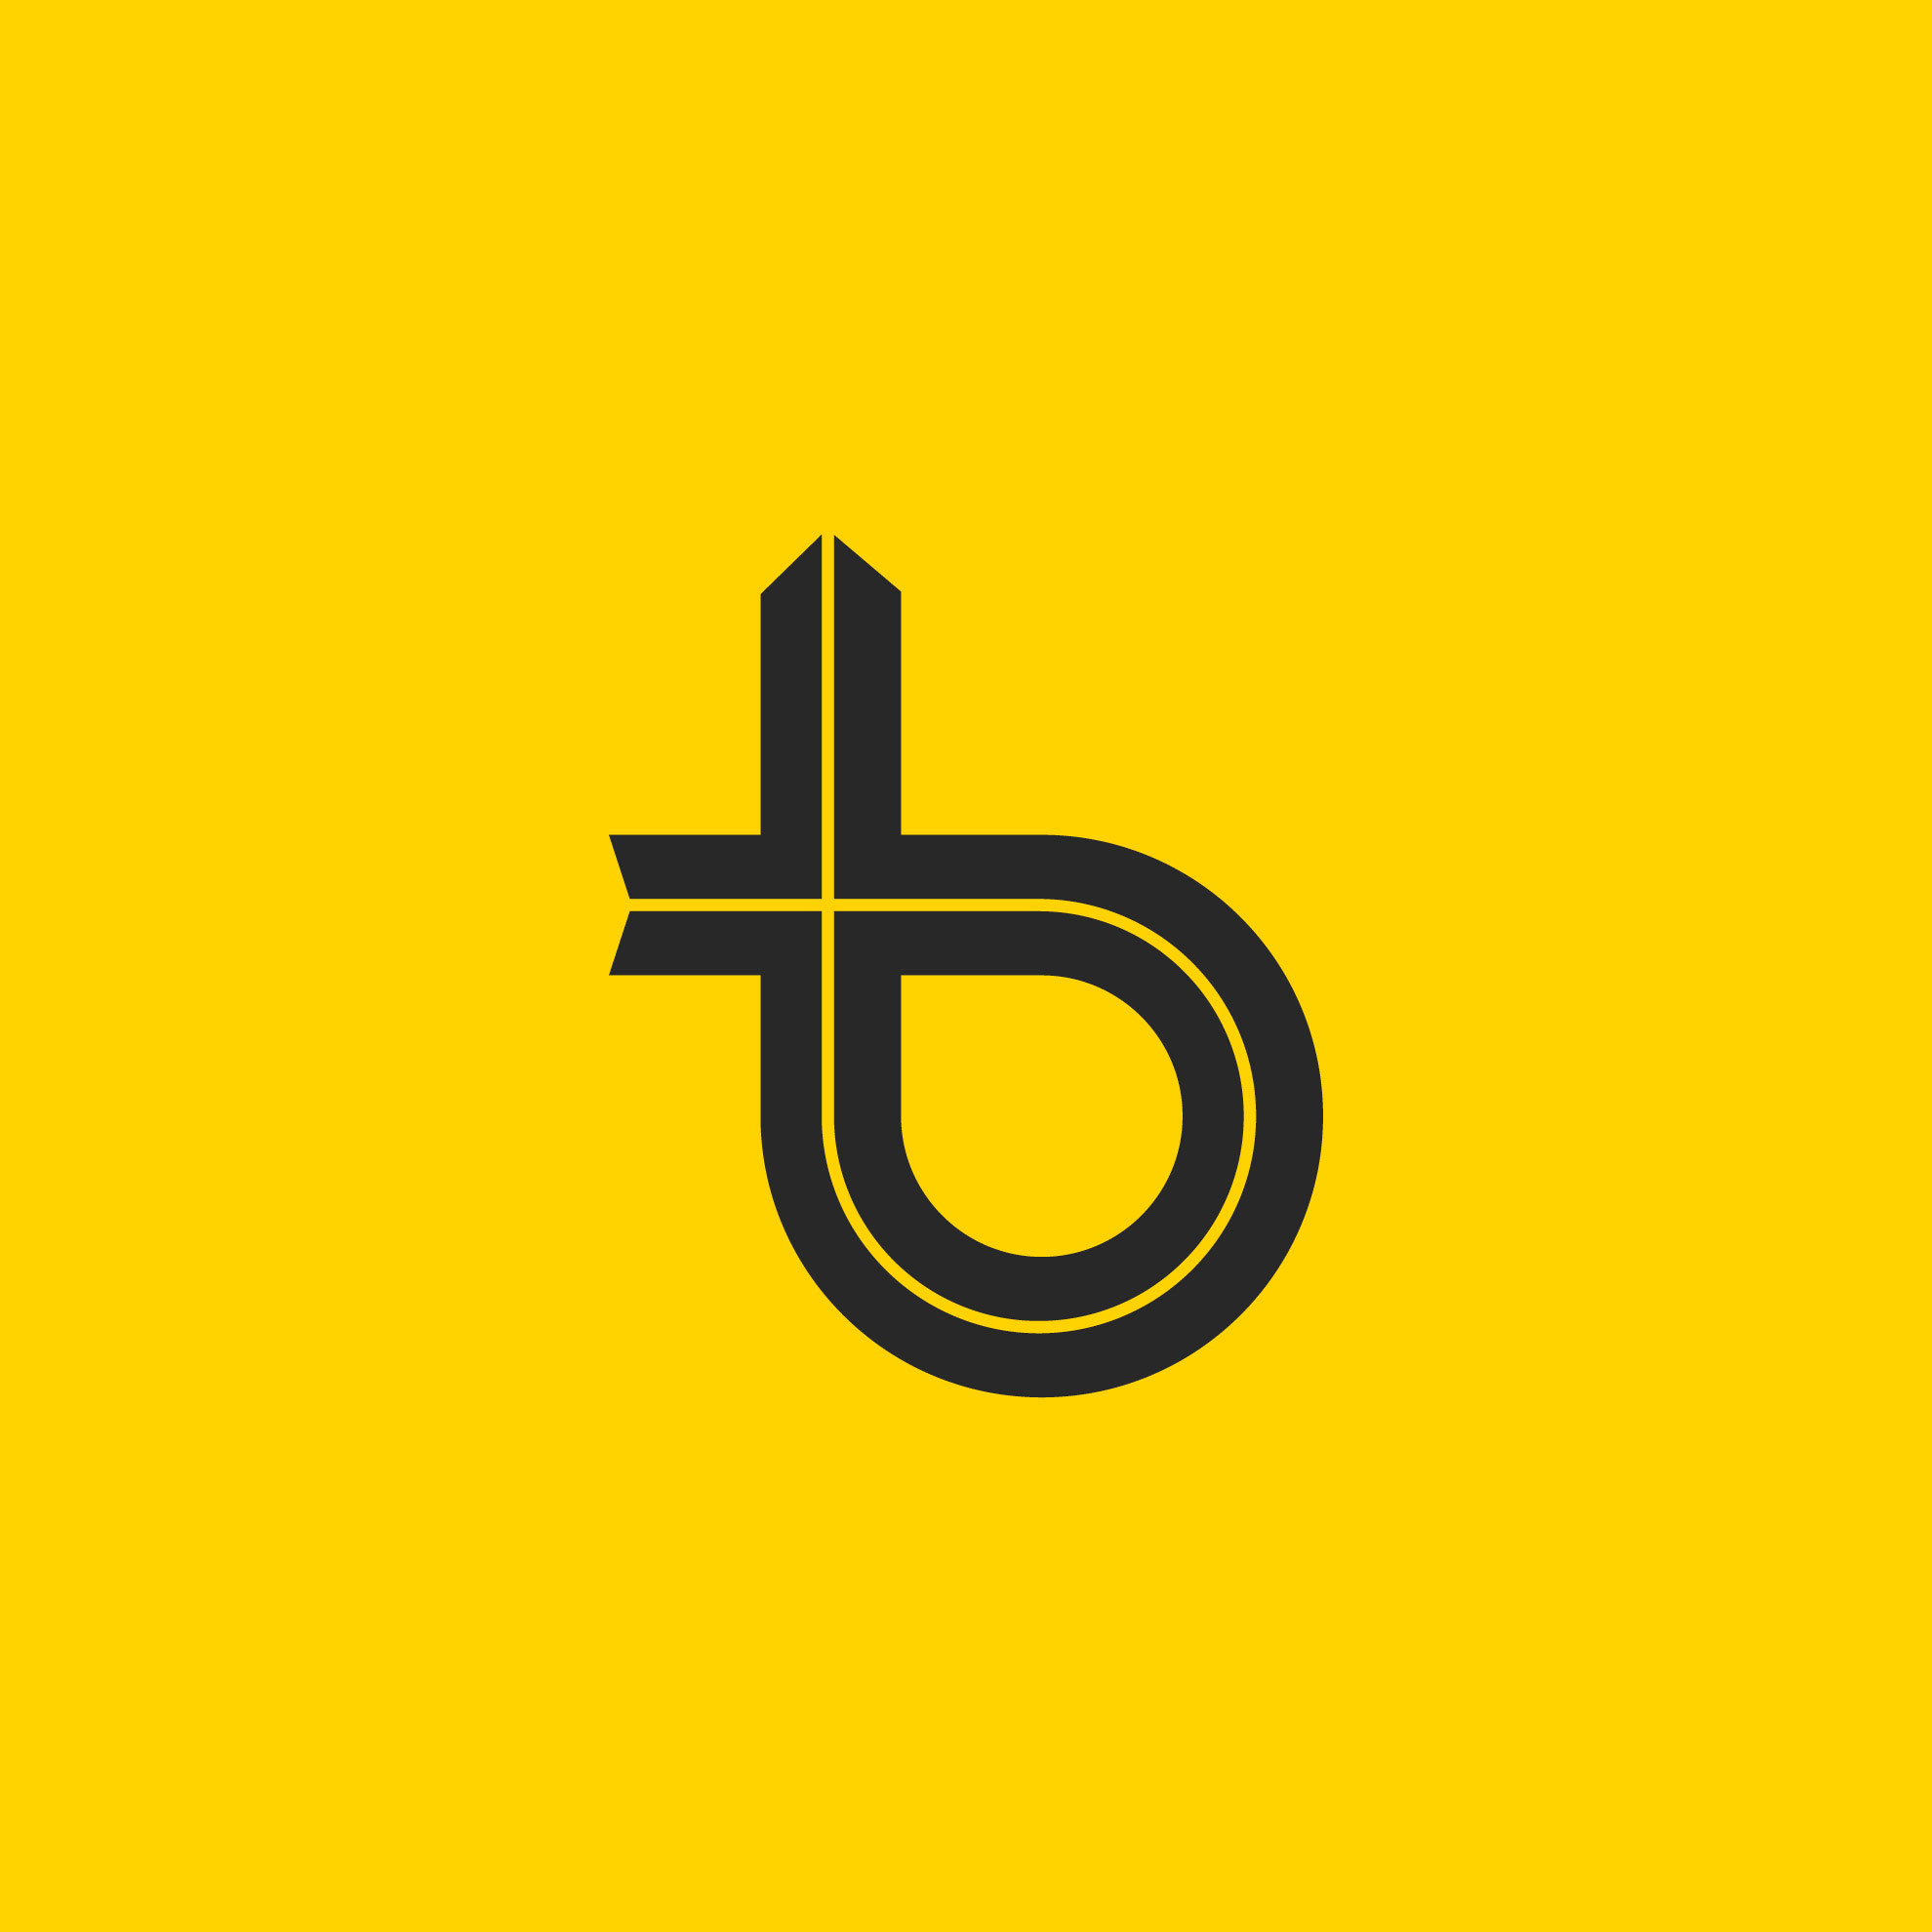 Businessary create your story we decided to tell this story by creating the b for businessary symbol the symbol we designed is strong and simple and represents businessarys clear biocorpaavc Gallery